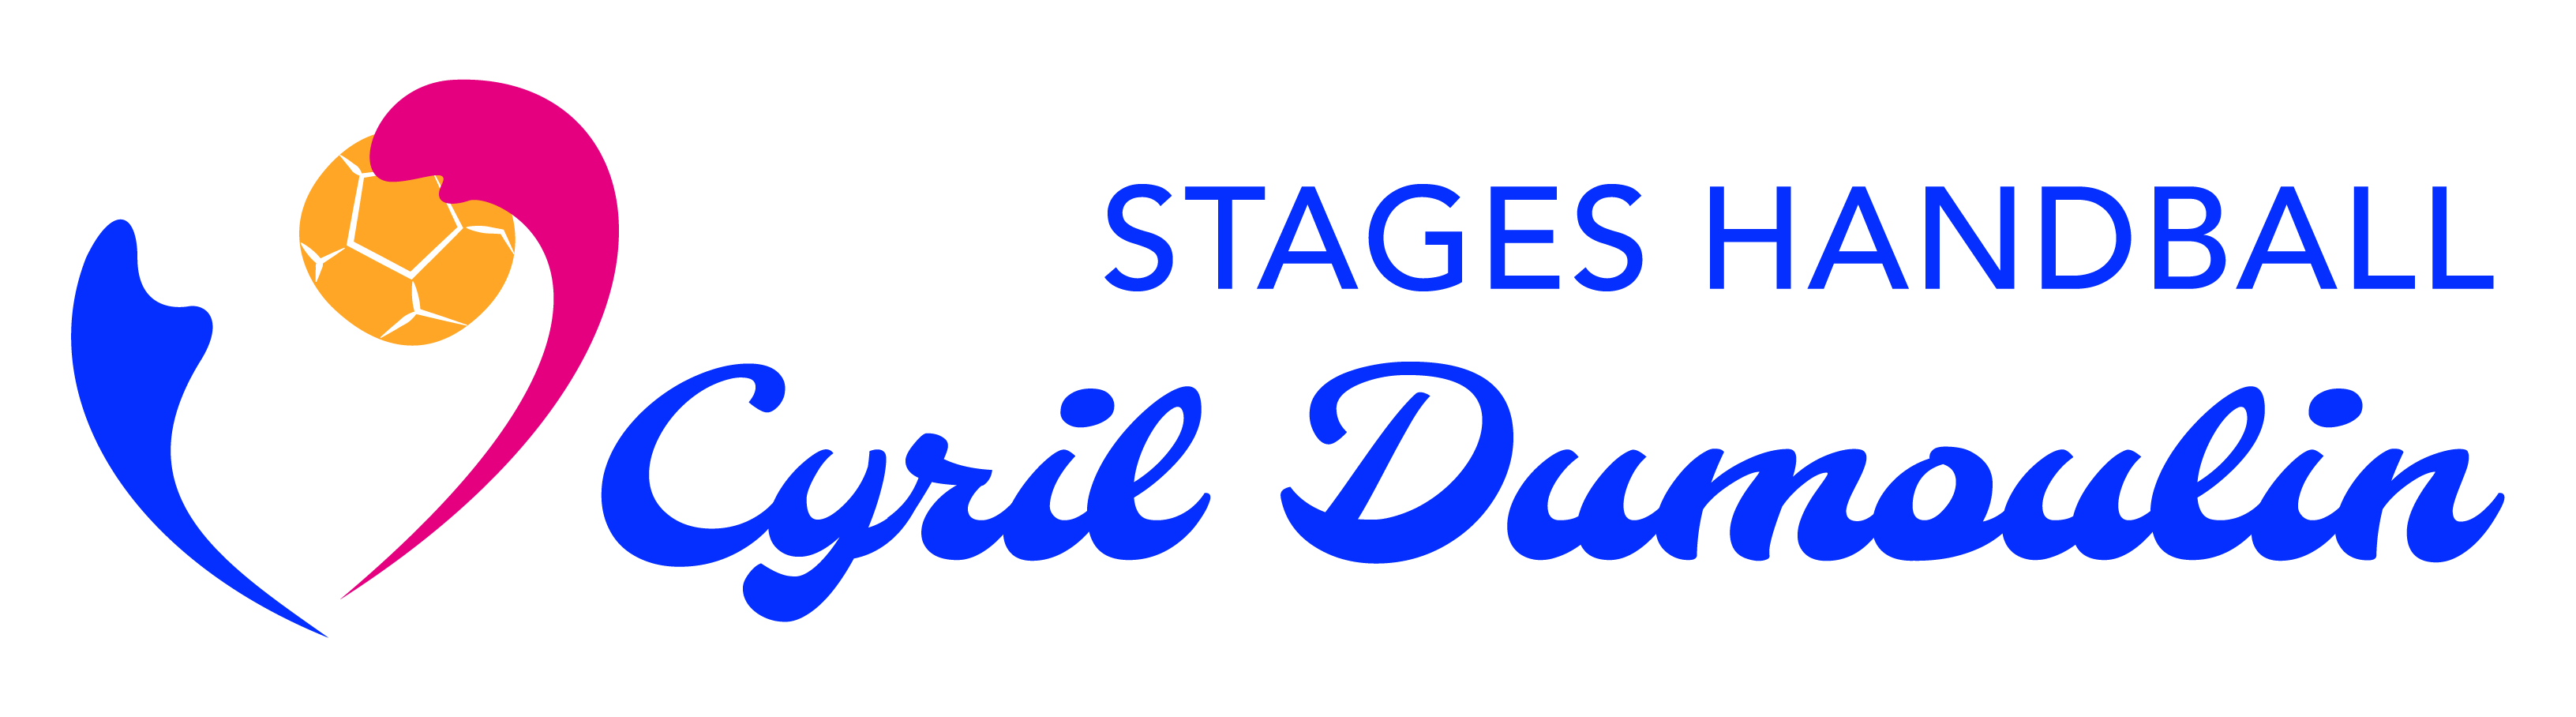 logo-StagesHandball-neutre